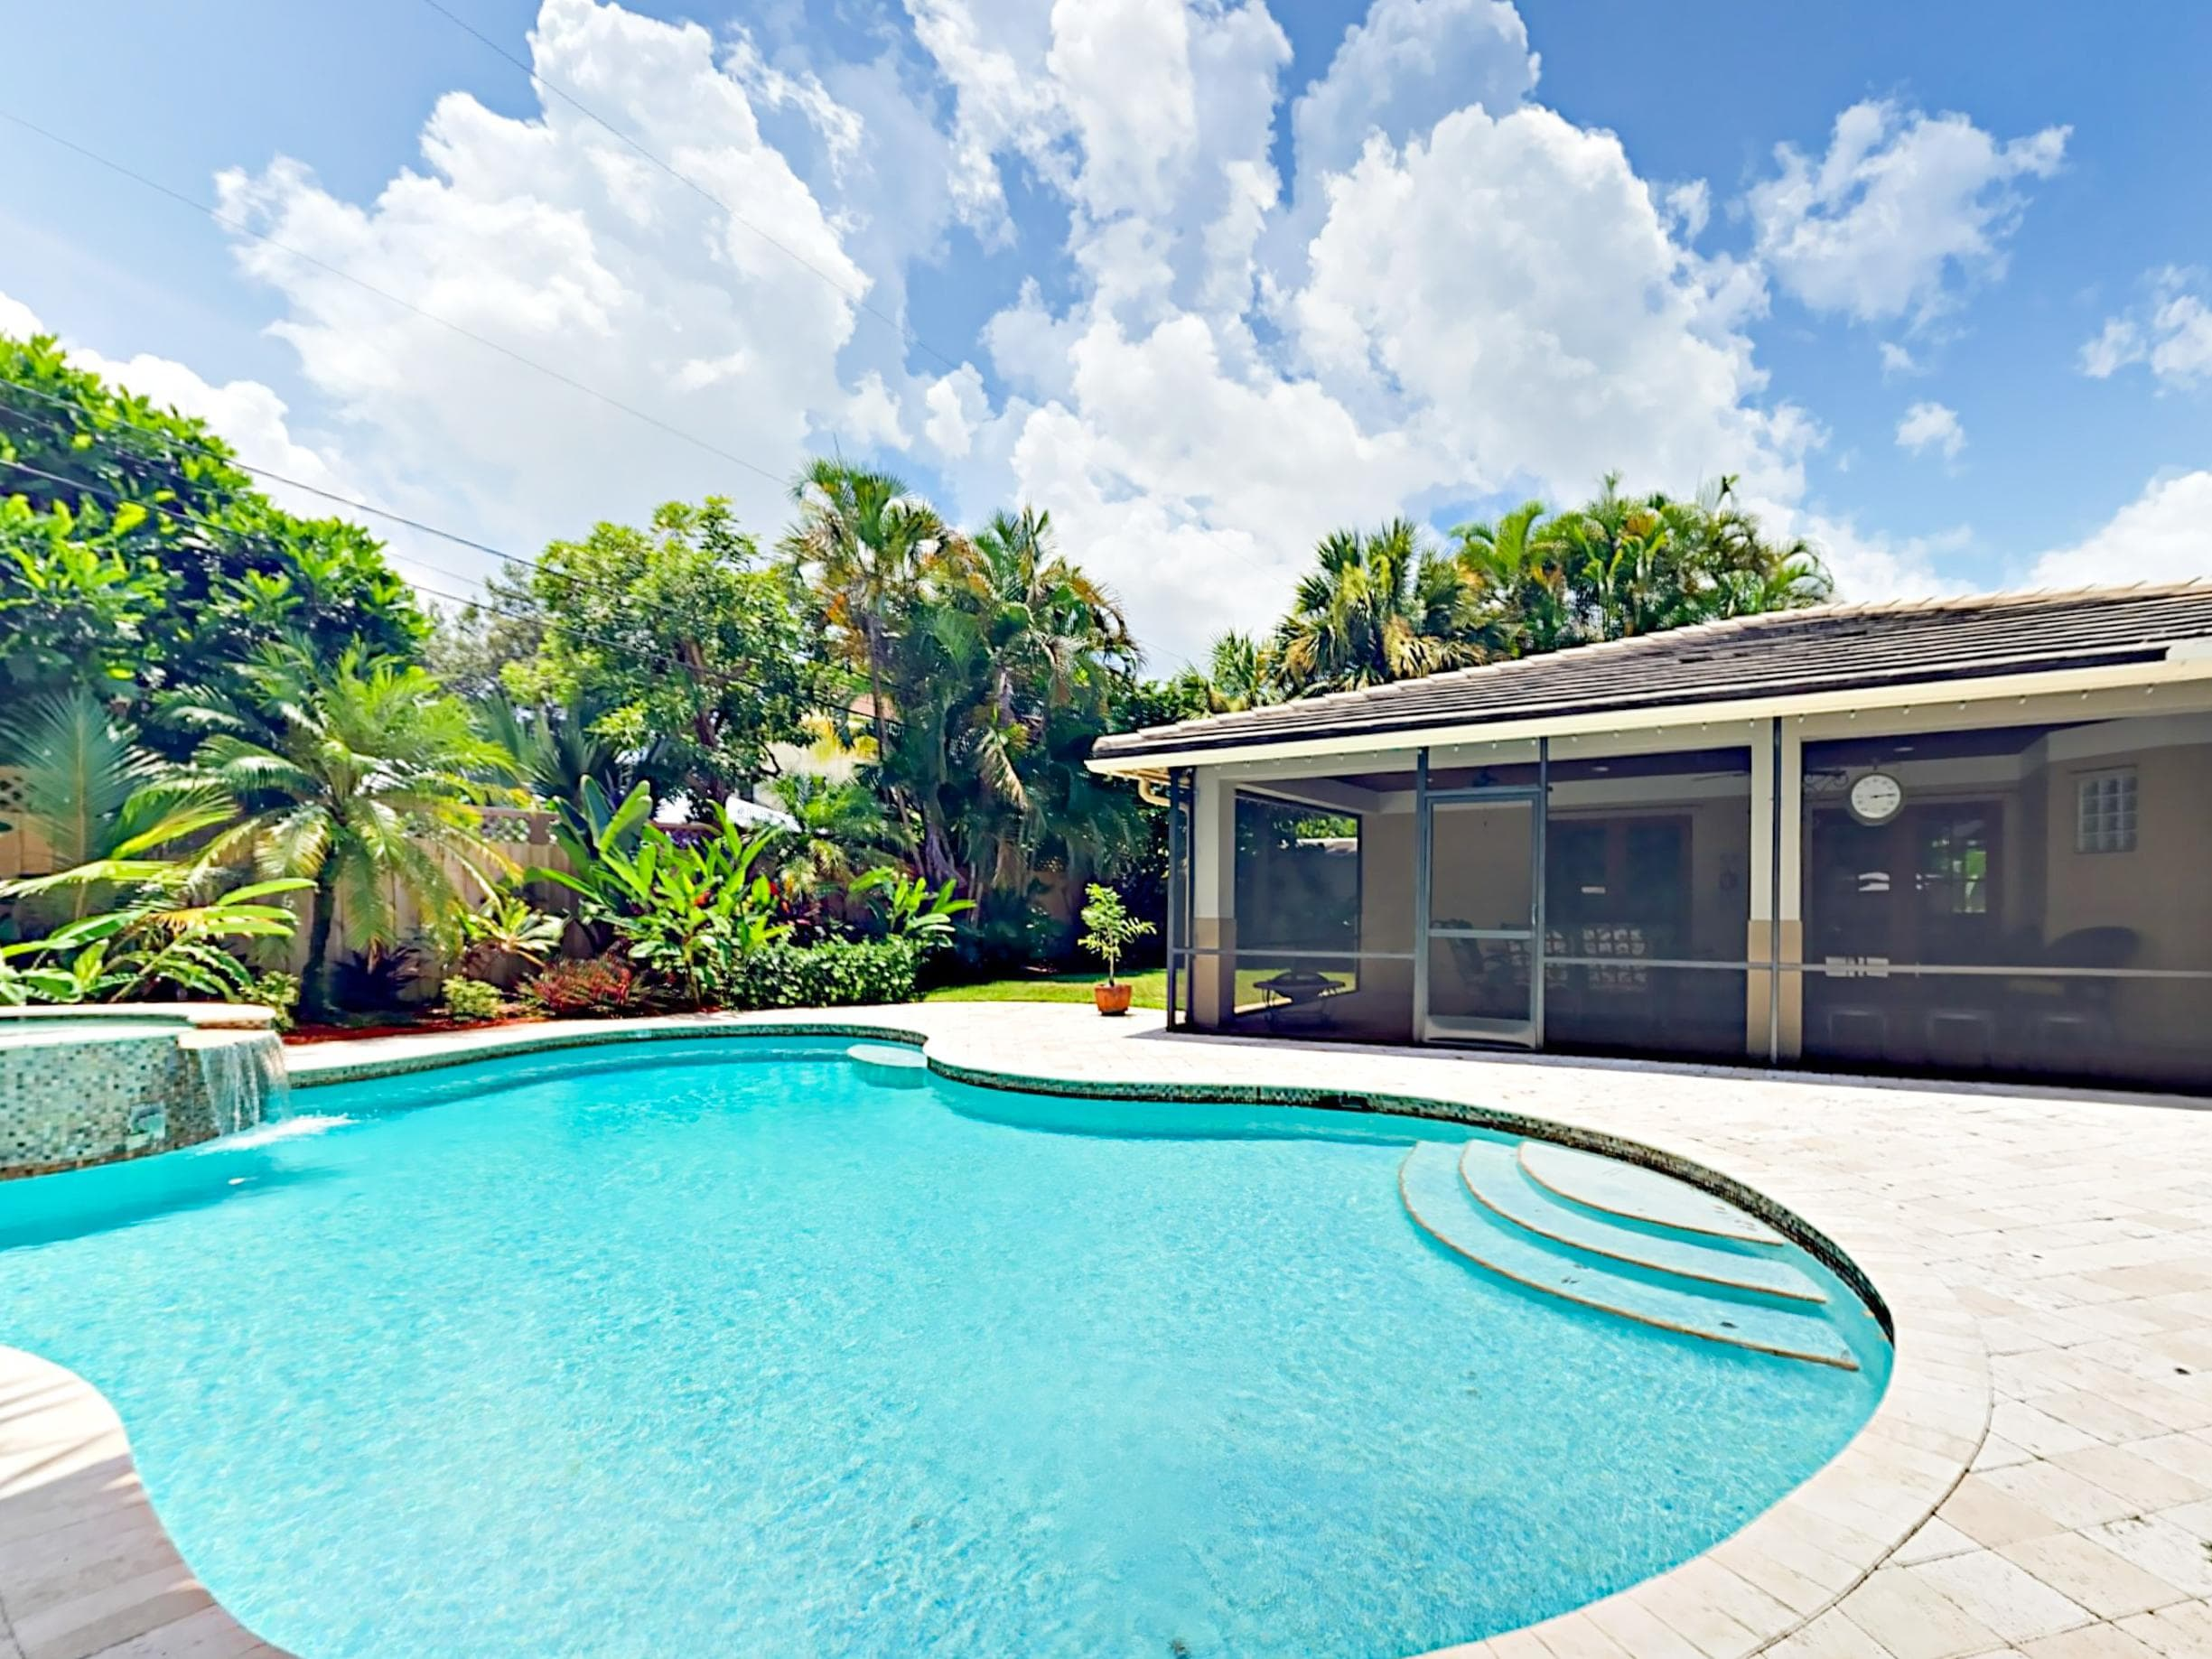 Welcome to West Palm Beach! Your rental is professionally managed by TurnKey Vacation Rentals.